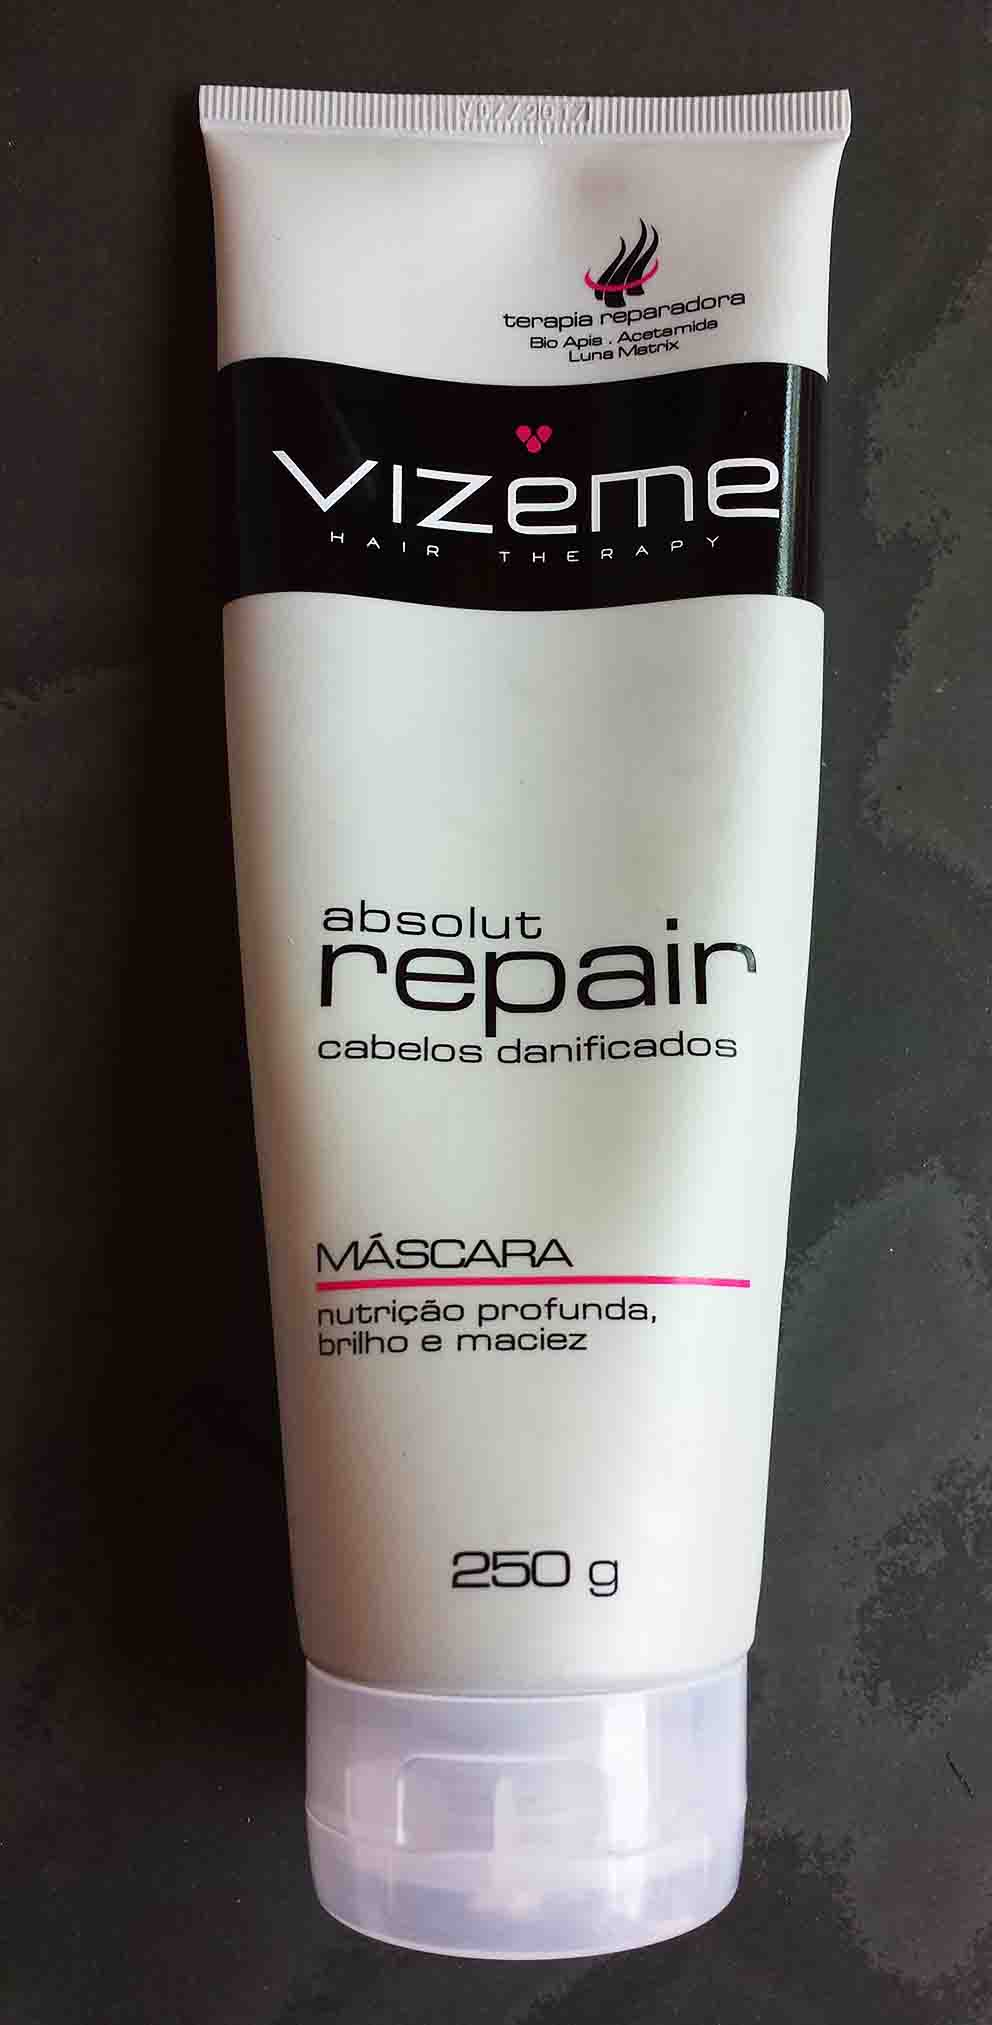 vizeme absolut repair